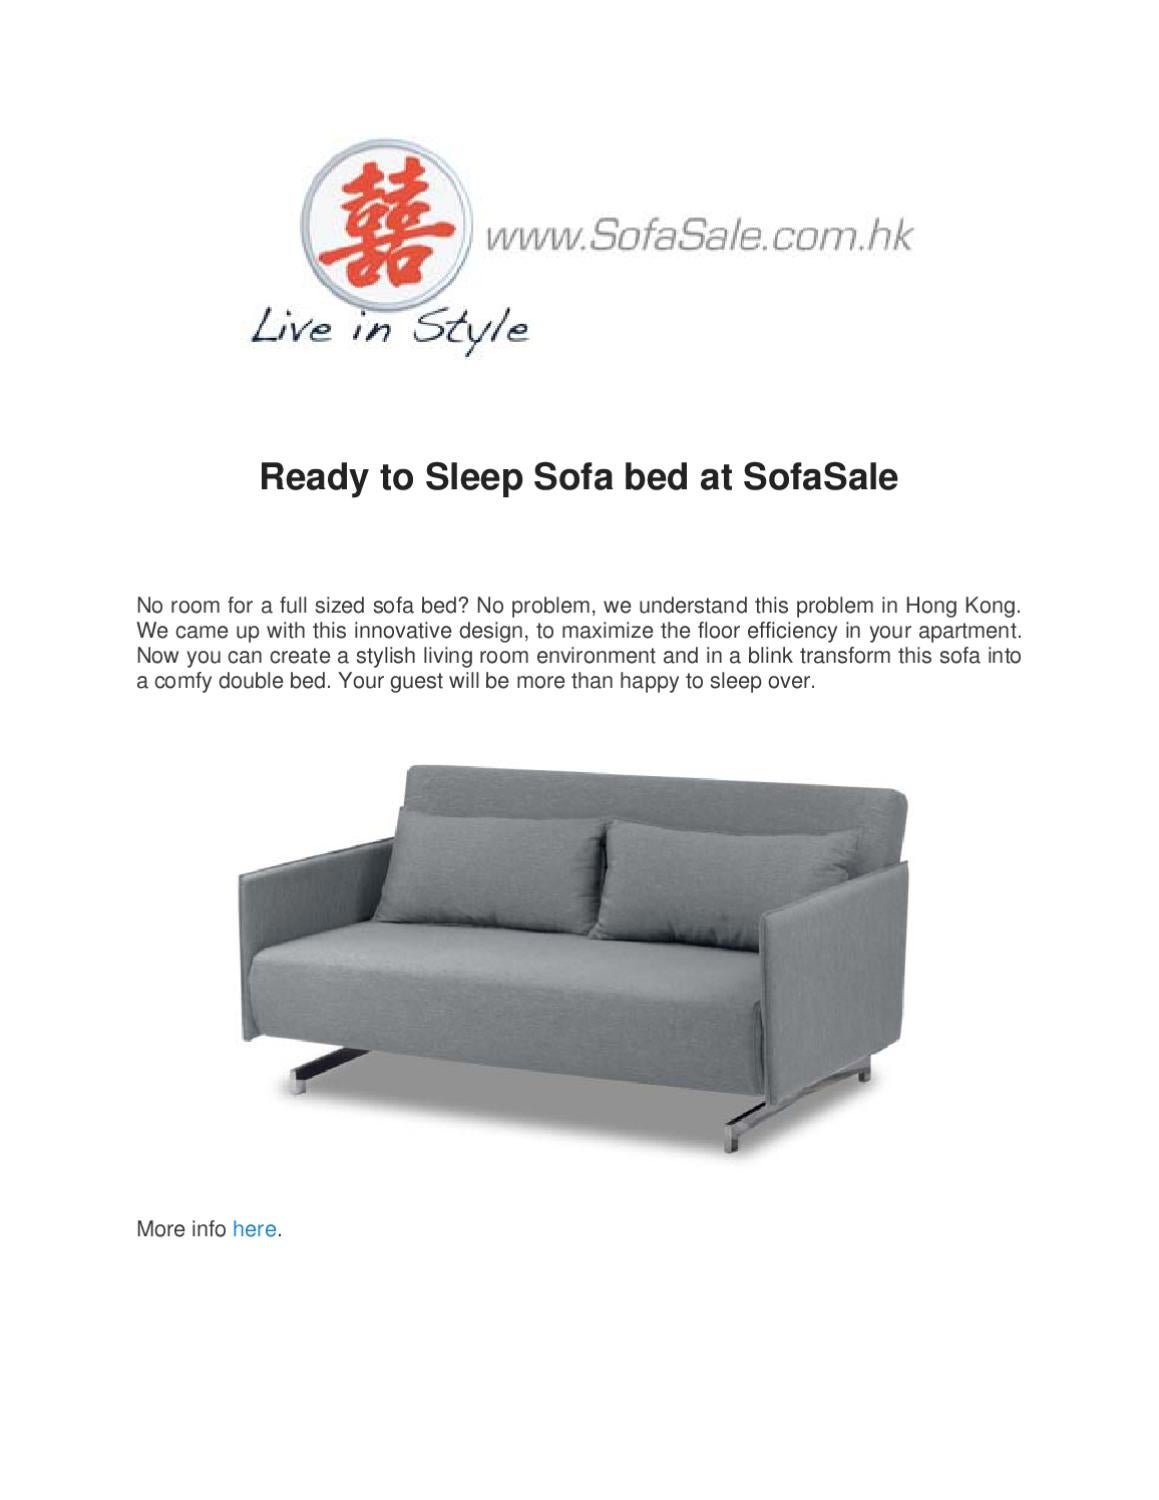 Swell Ready To Sleep Sofa Bed At Sofasale By Prawesh Limbu Issuu Pdpeps Interior Chair Design Pdpepsorg